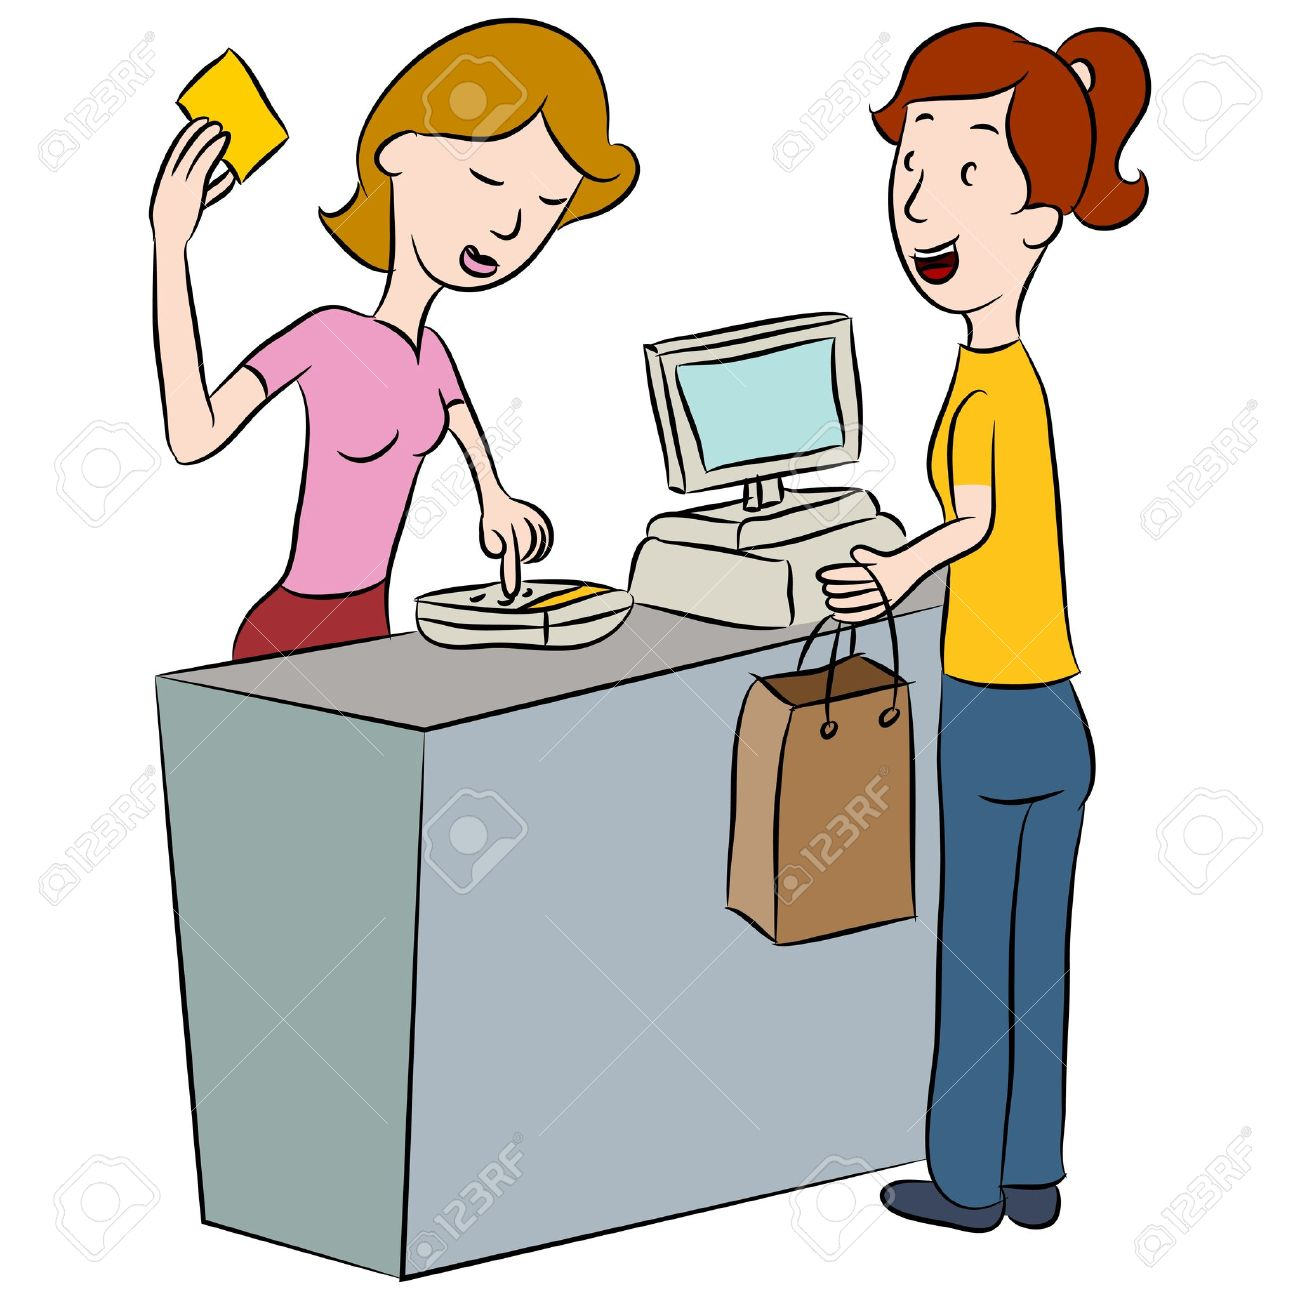 An image of a woman entering her PIN number at a store counter. Stock Vector - 18025588